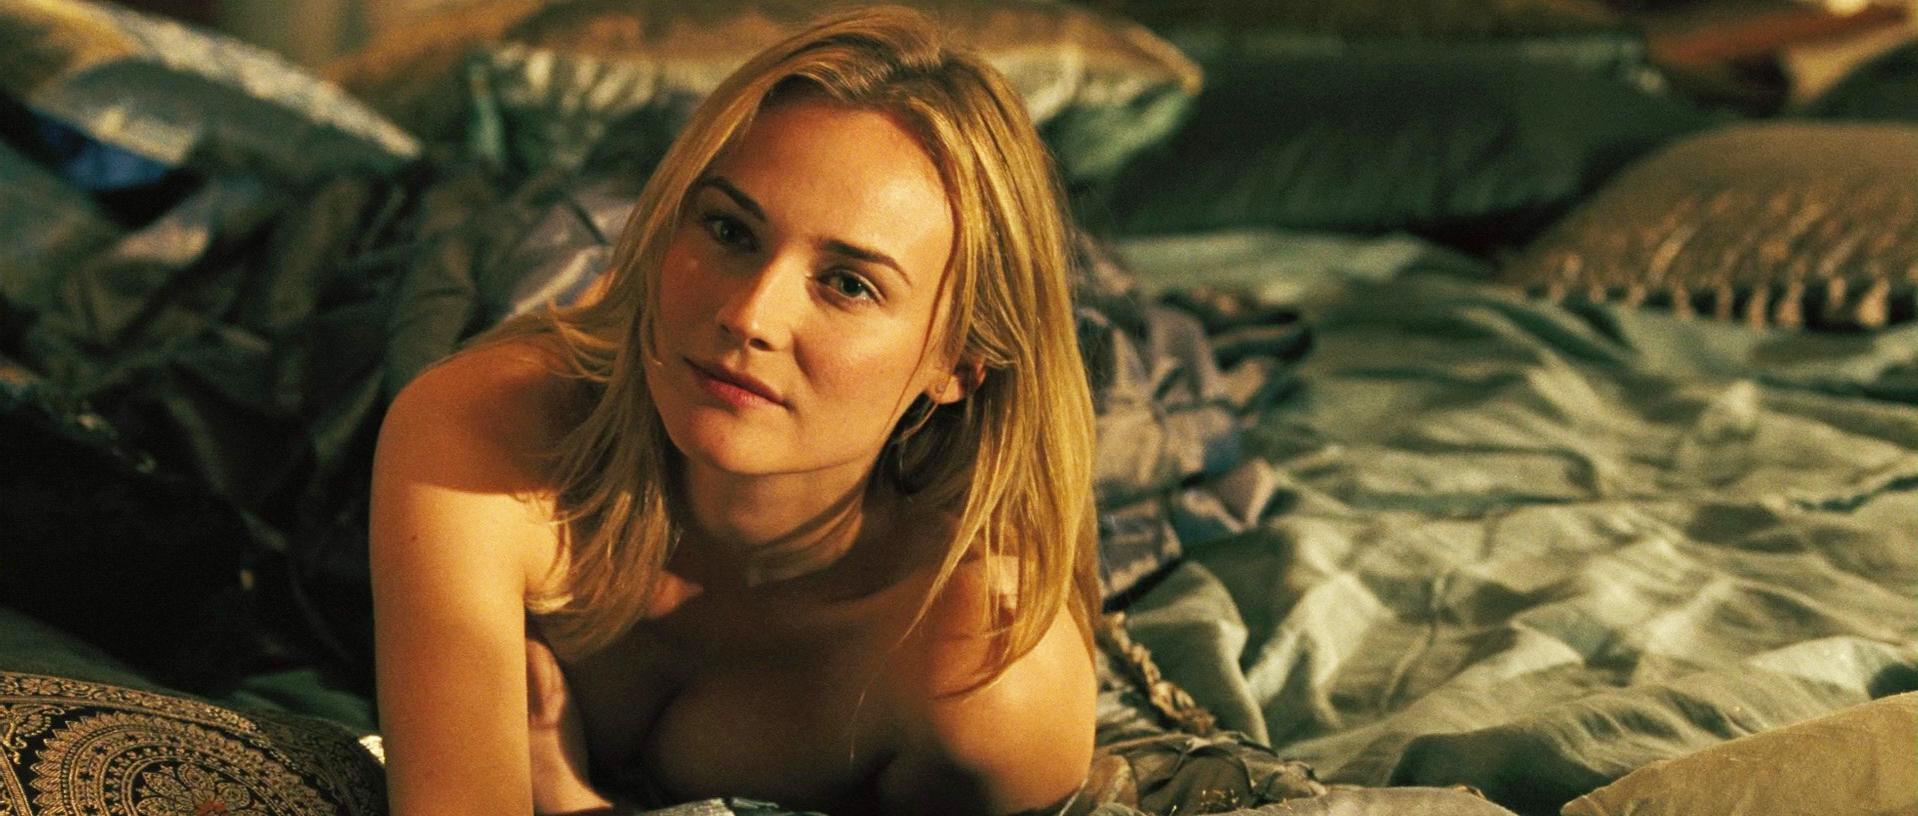 Diane Kruger nude - The Age of Ignorance (2007)